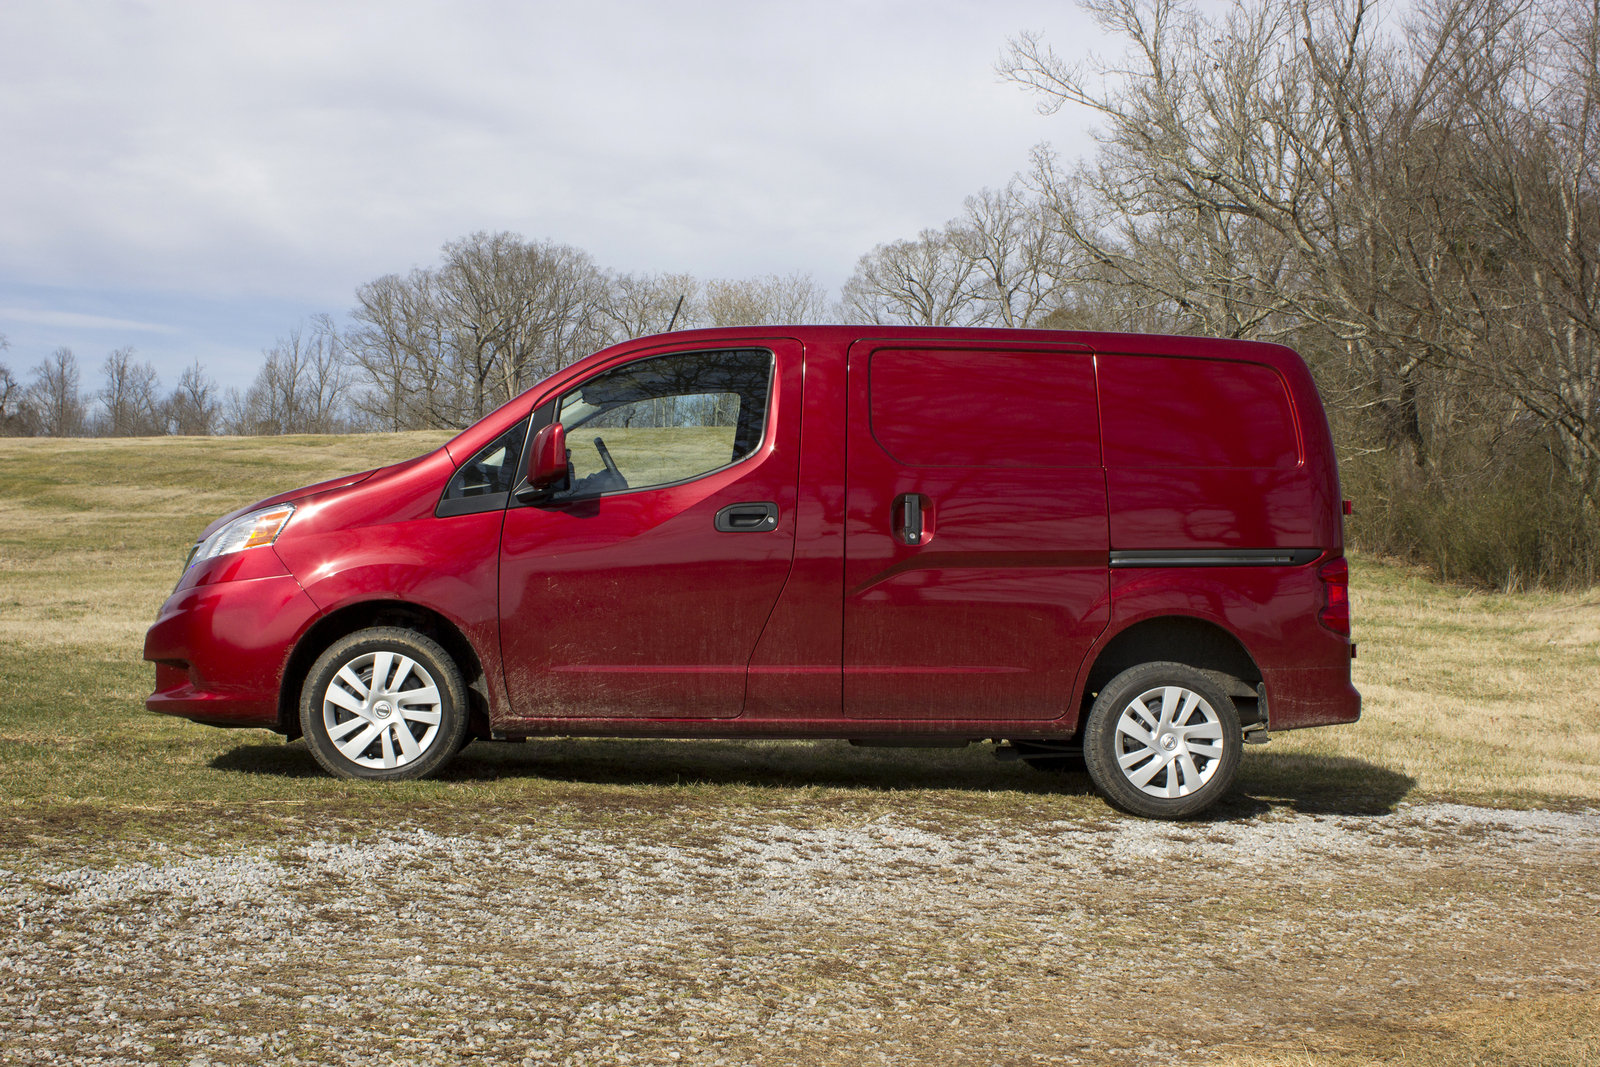 2015 nissan nv200 driven picture 613888 truck review top speed. Black Bedroom Furniture Sets. Home Design Ideas